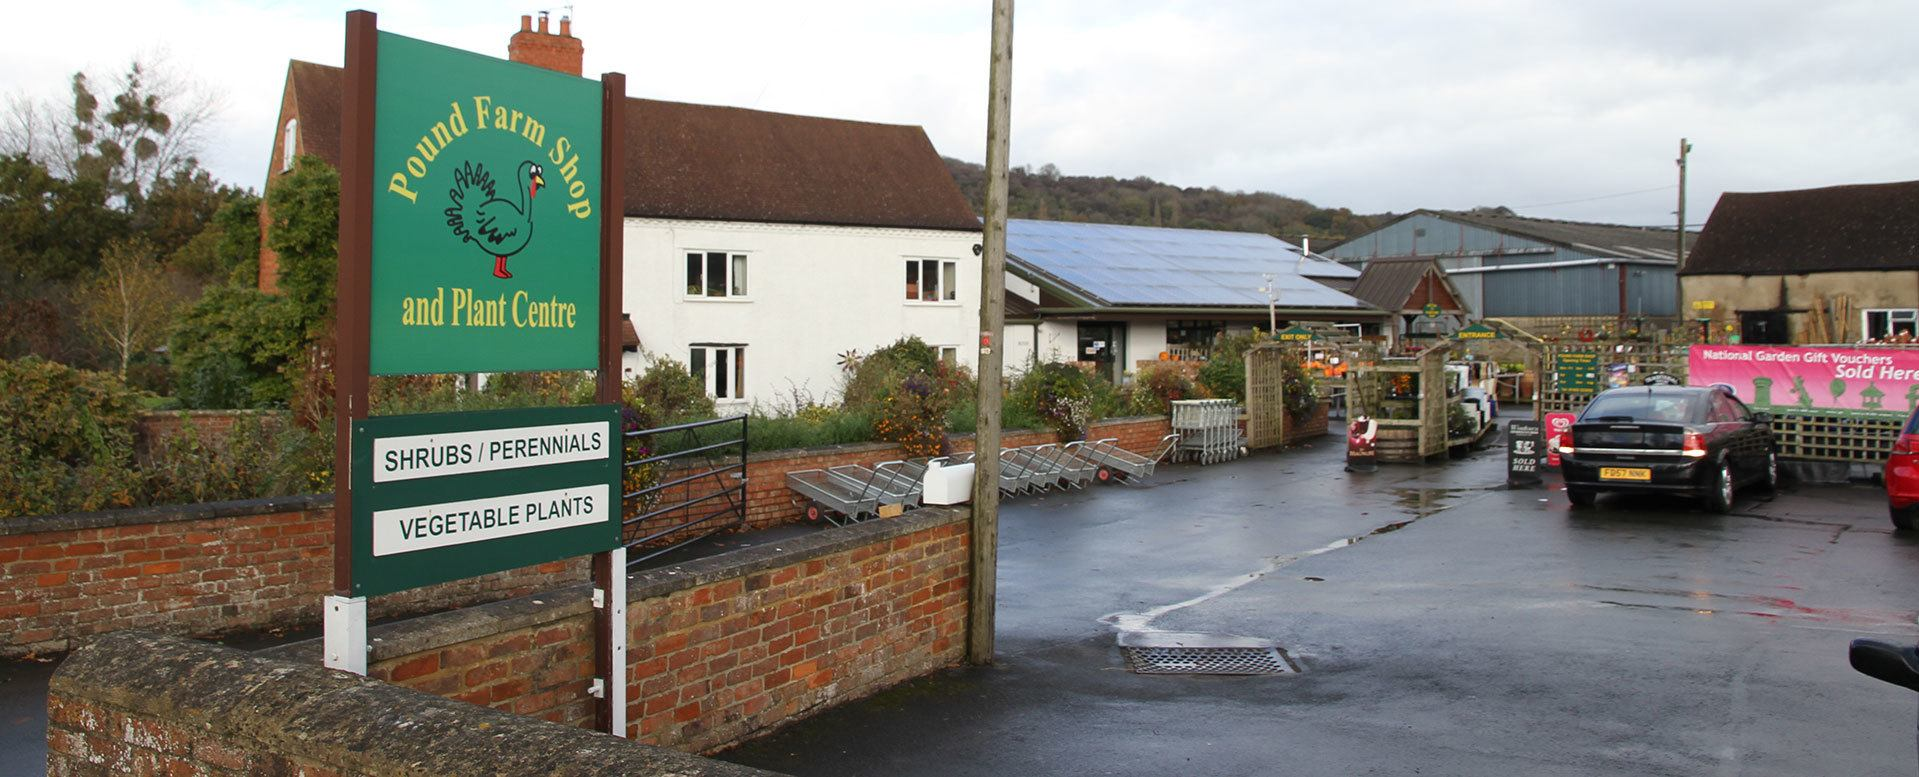 Farmhouse Contact Number Contact Us Pound Farm Shop And Plant Centre